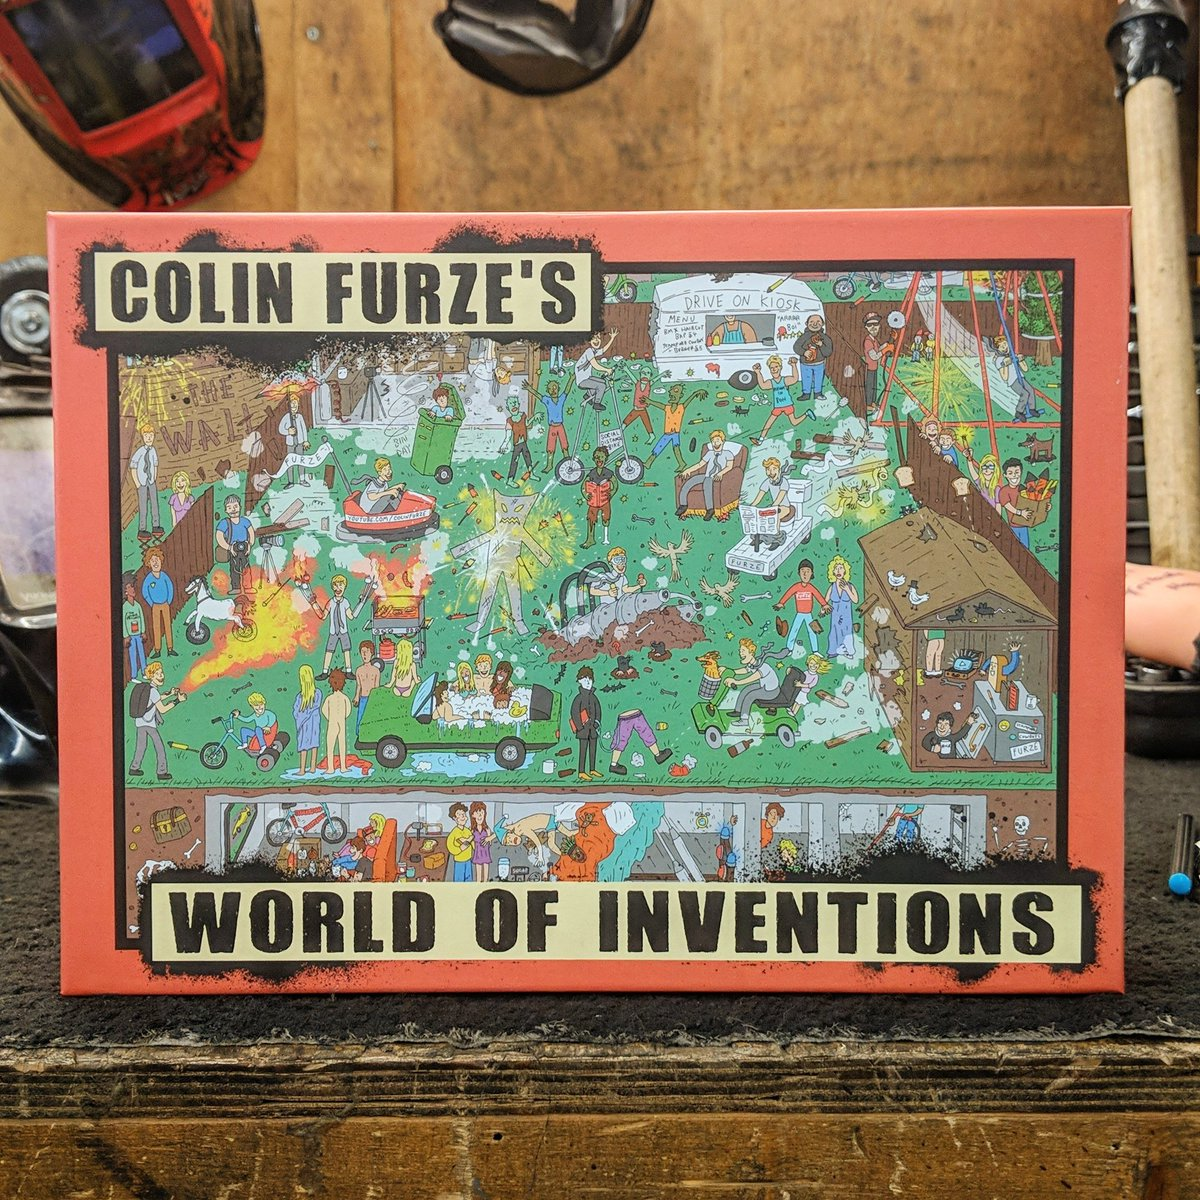 It's national puzzle day so grab the best there is at   #nationalpuzzleday  #colinfurze #lockdown #sparetime